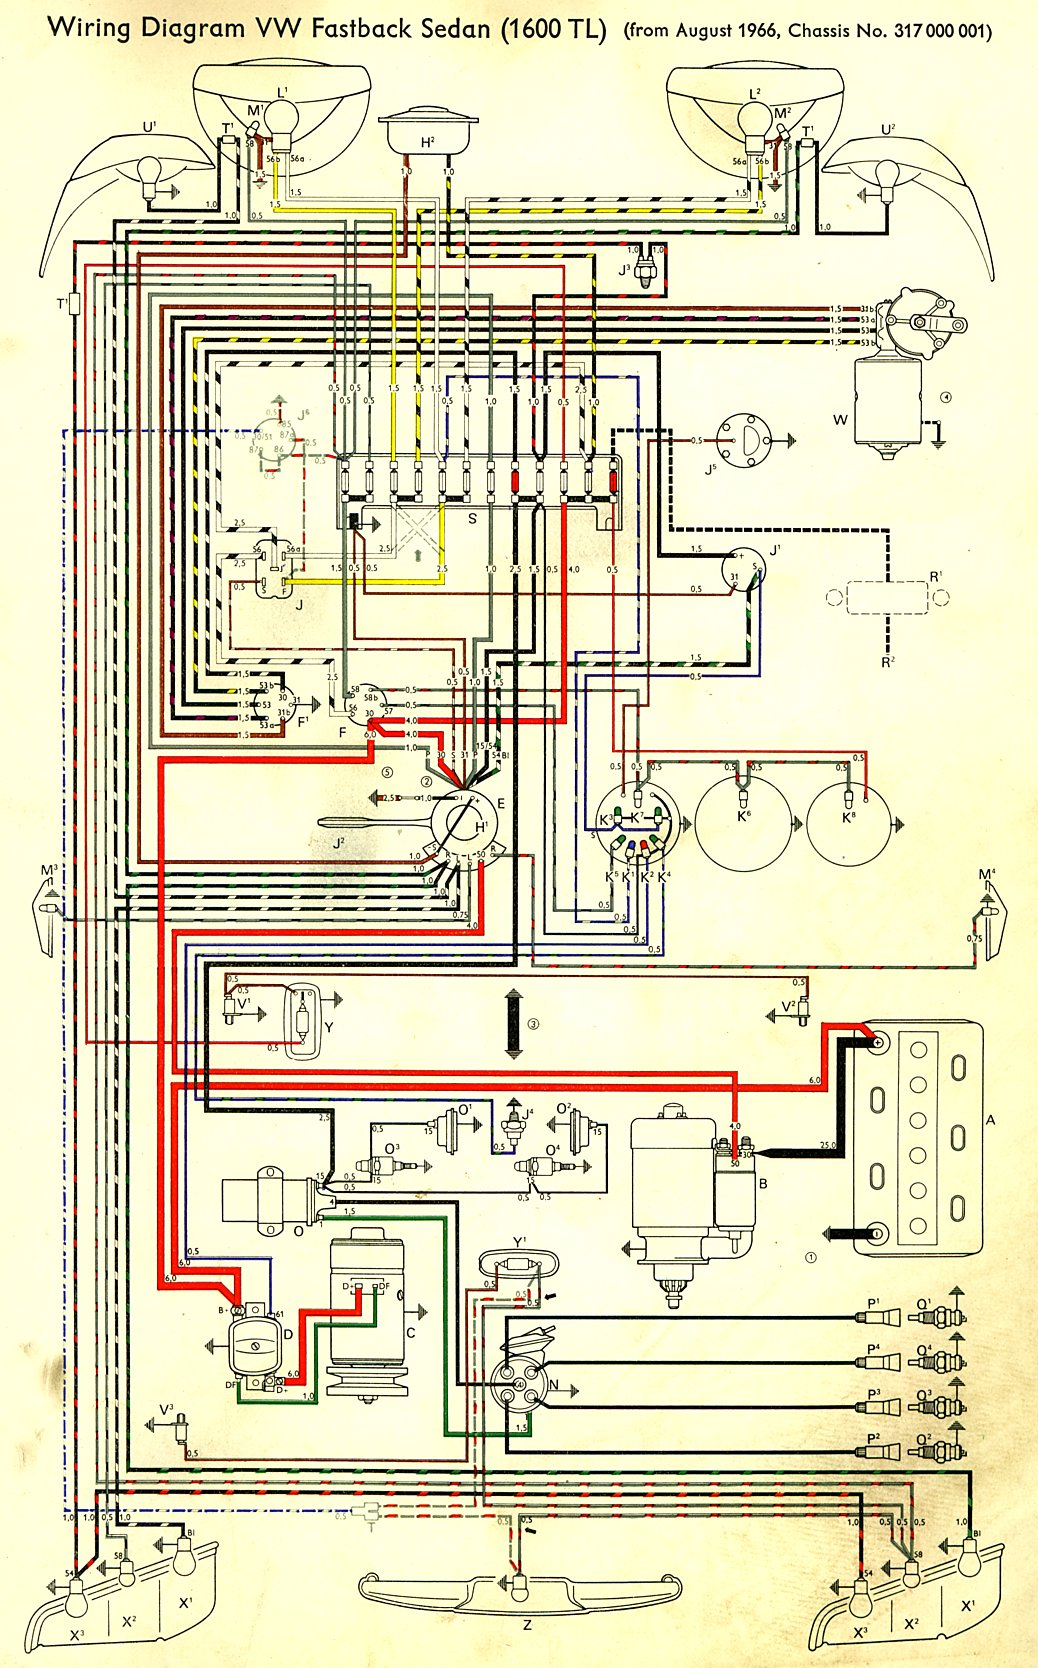 hight resolution of 1967 vw beetle wiring harness diagram simple wiring schema baja bug wiring diagram 67 vw bug wiring diagram